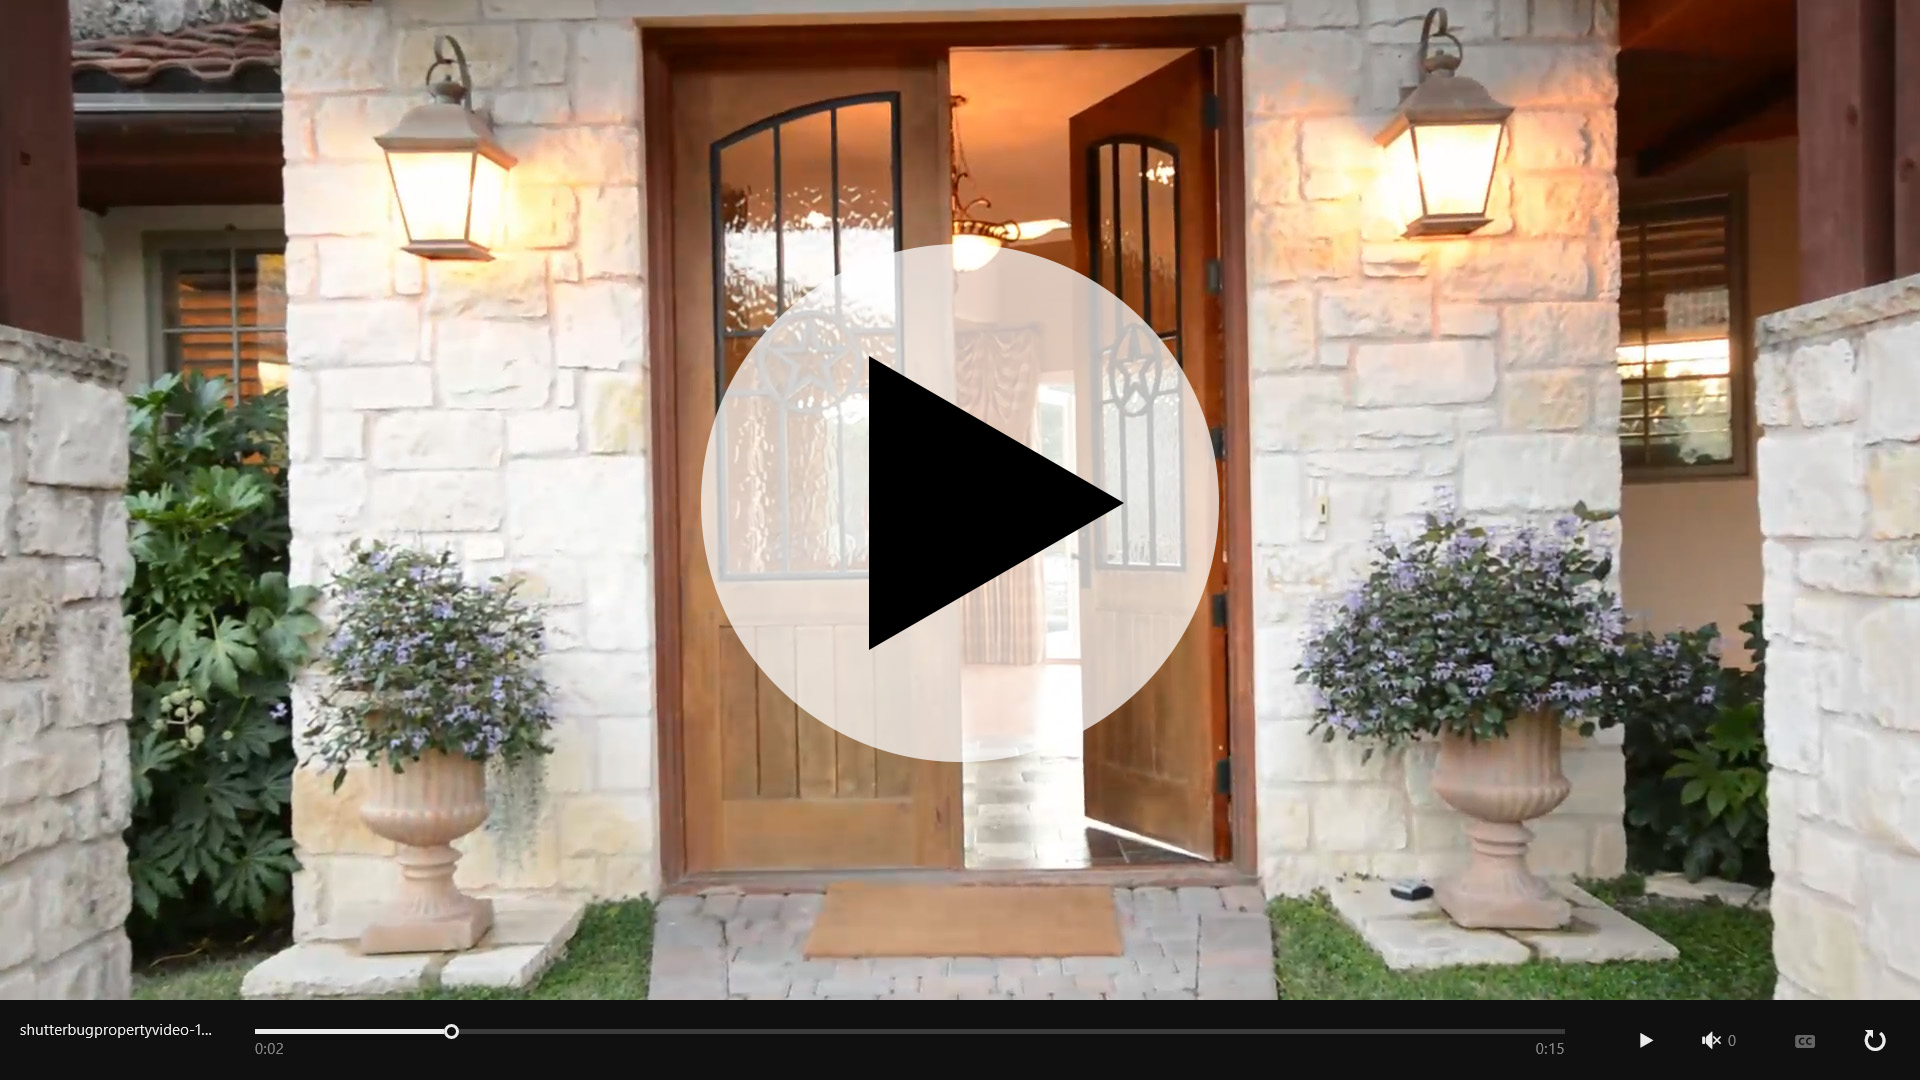 Home E-Motion content optimized for Social Media Video sharing